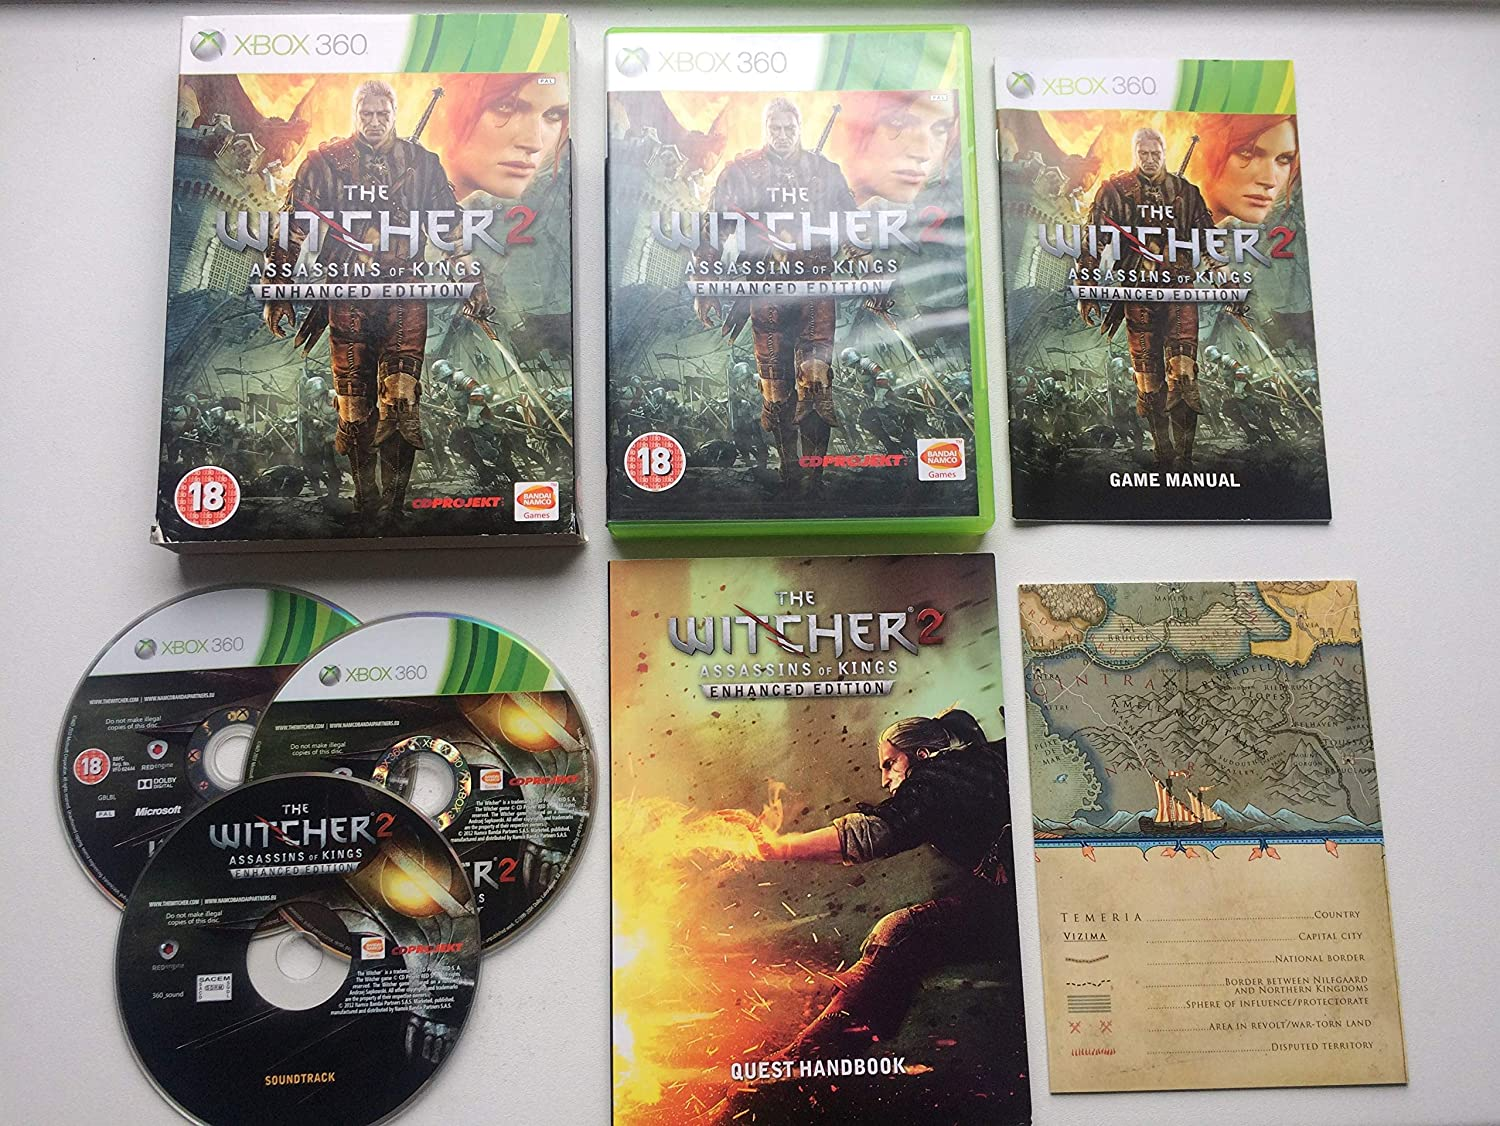 The Witcher 2: Assassins of Kings - Enhanced Edition (Xbox 360